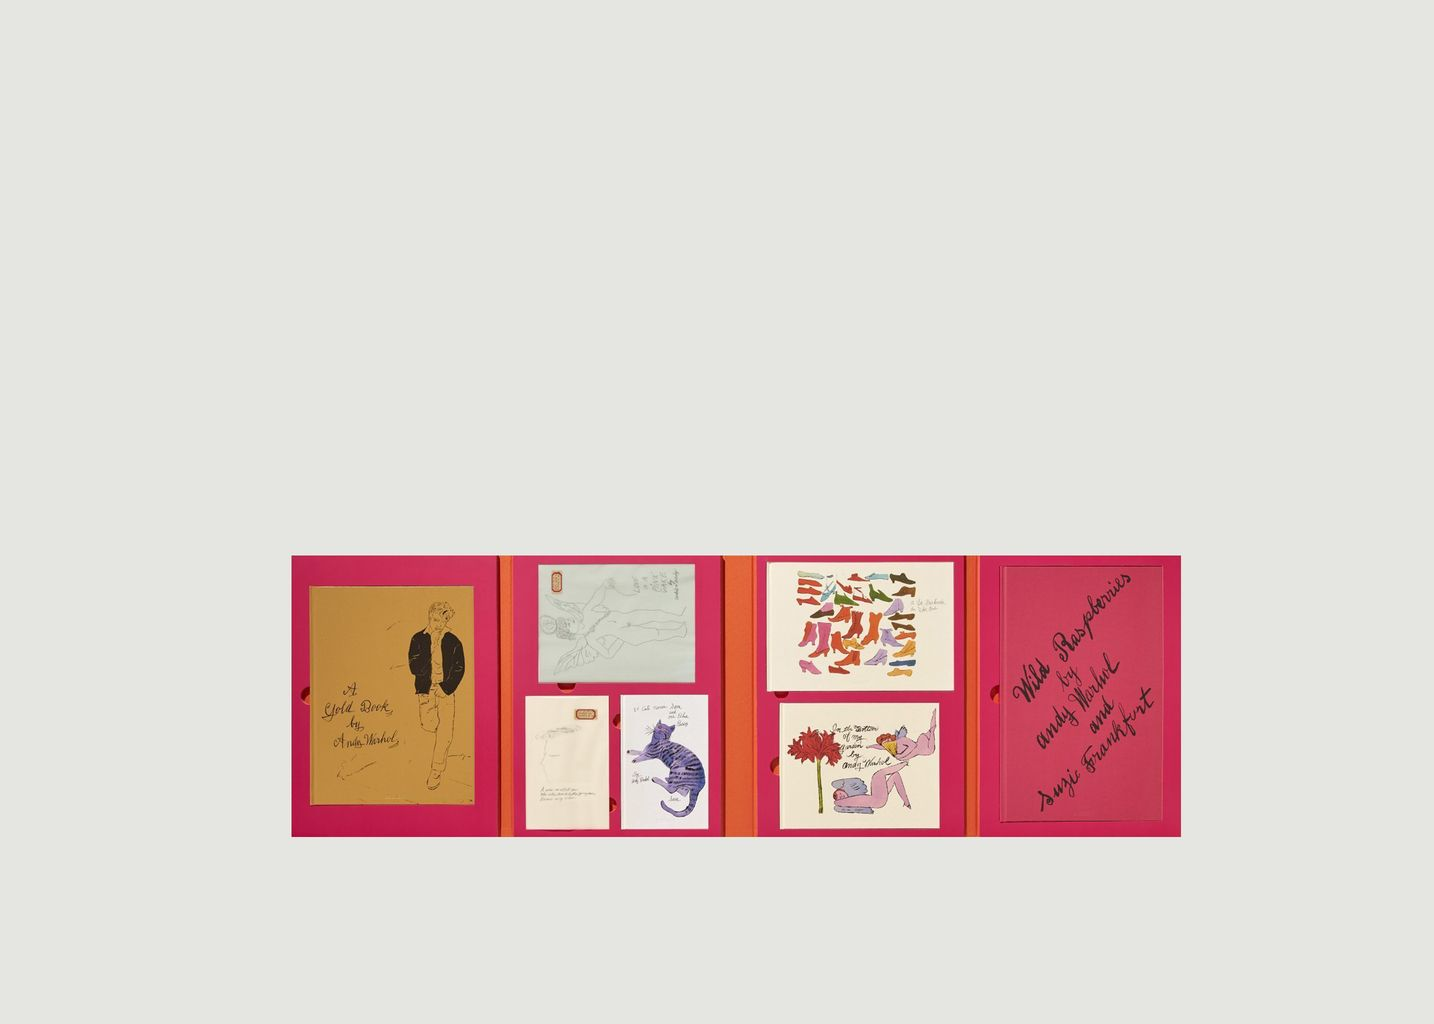 Andy Warhol. Seven Illustrated Books 1952-1959 - La Librairie